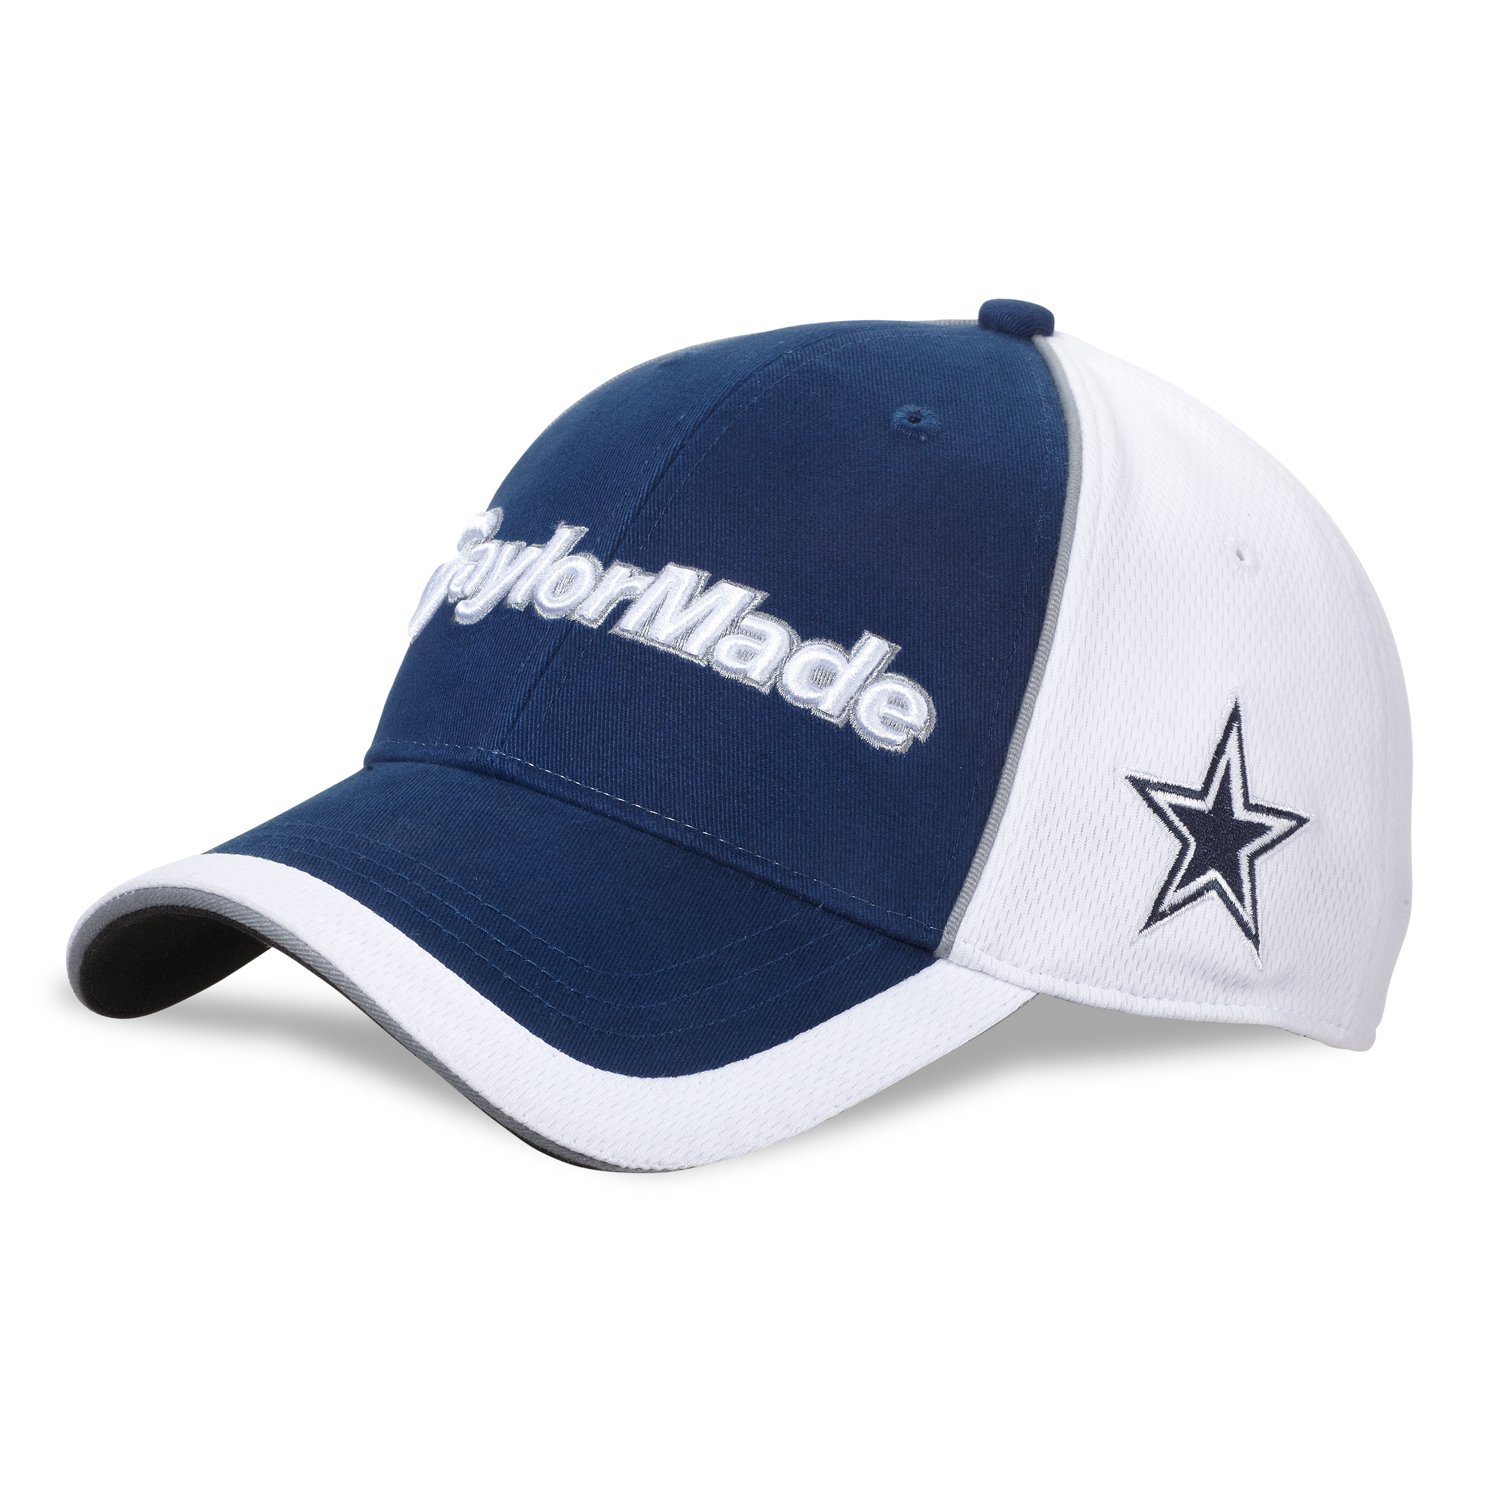 online retailer 0fda9 4a314 ... caption contest win a dallas cowboy hat from taylormade